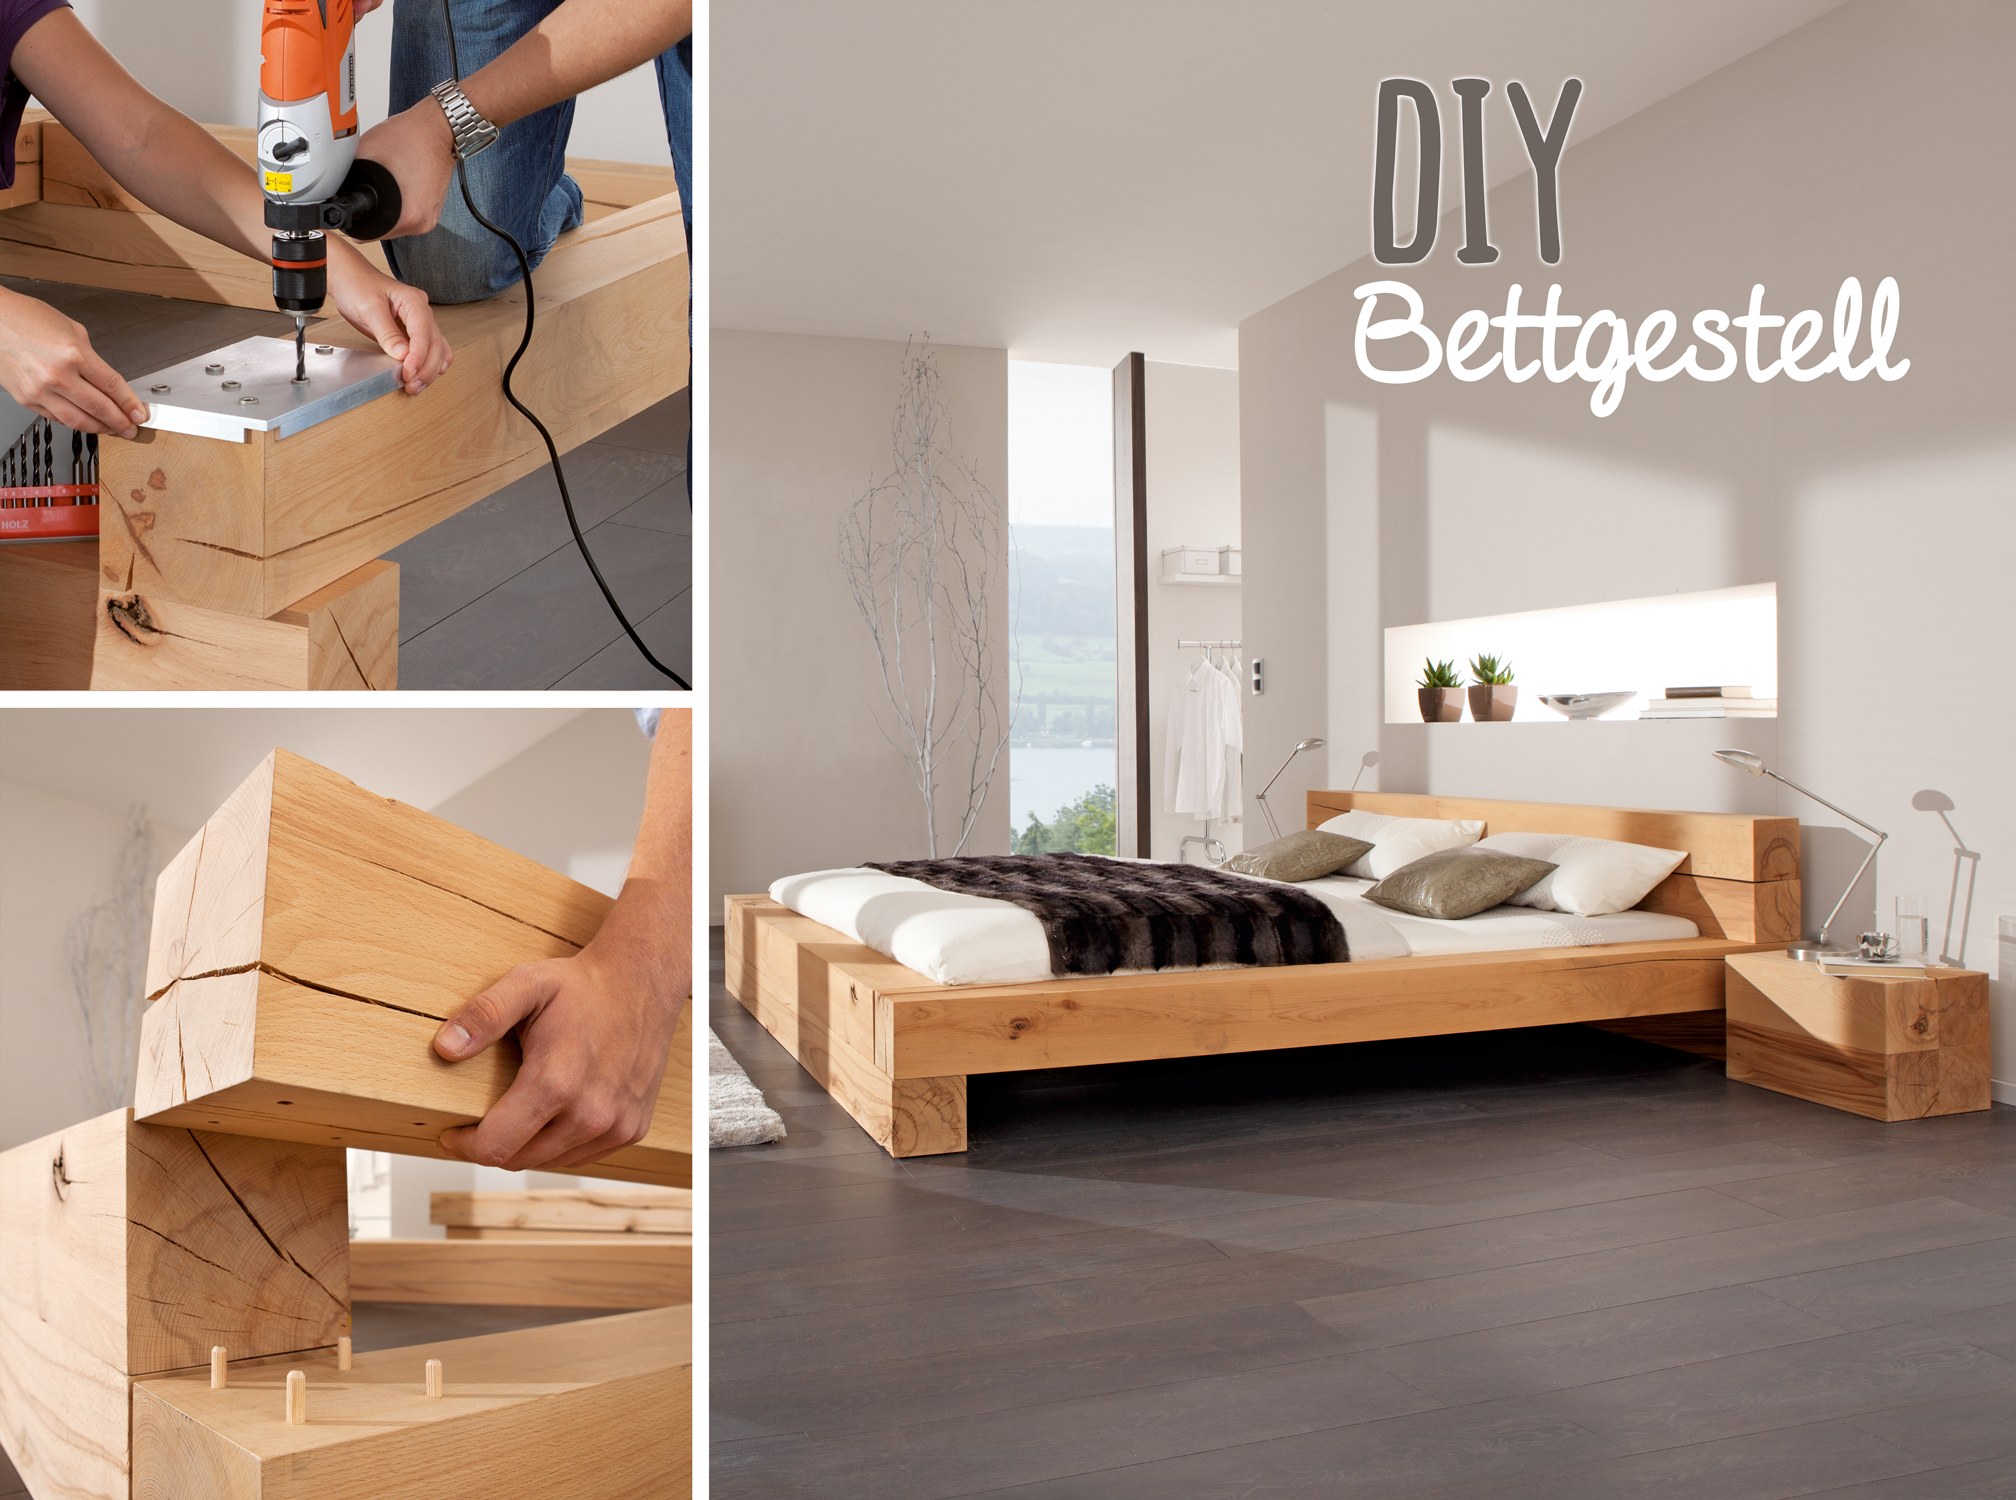 massiv blox holzbalken do it yourself pinterest diy bed frame diy bed und wood beds. Black Bedroom Furniture Sets. Home Design Ideas